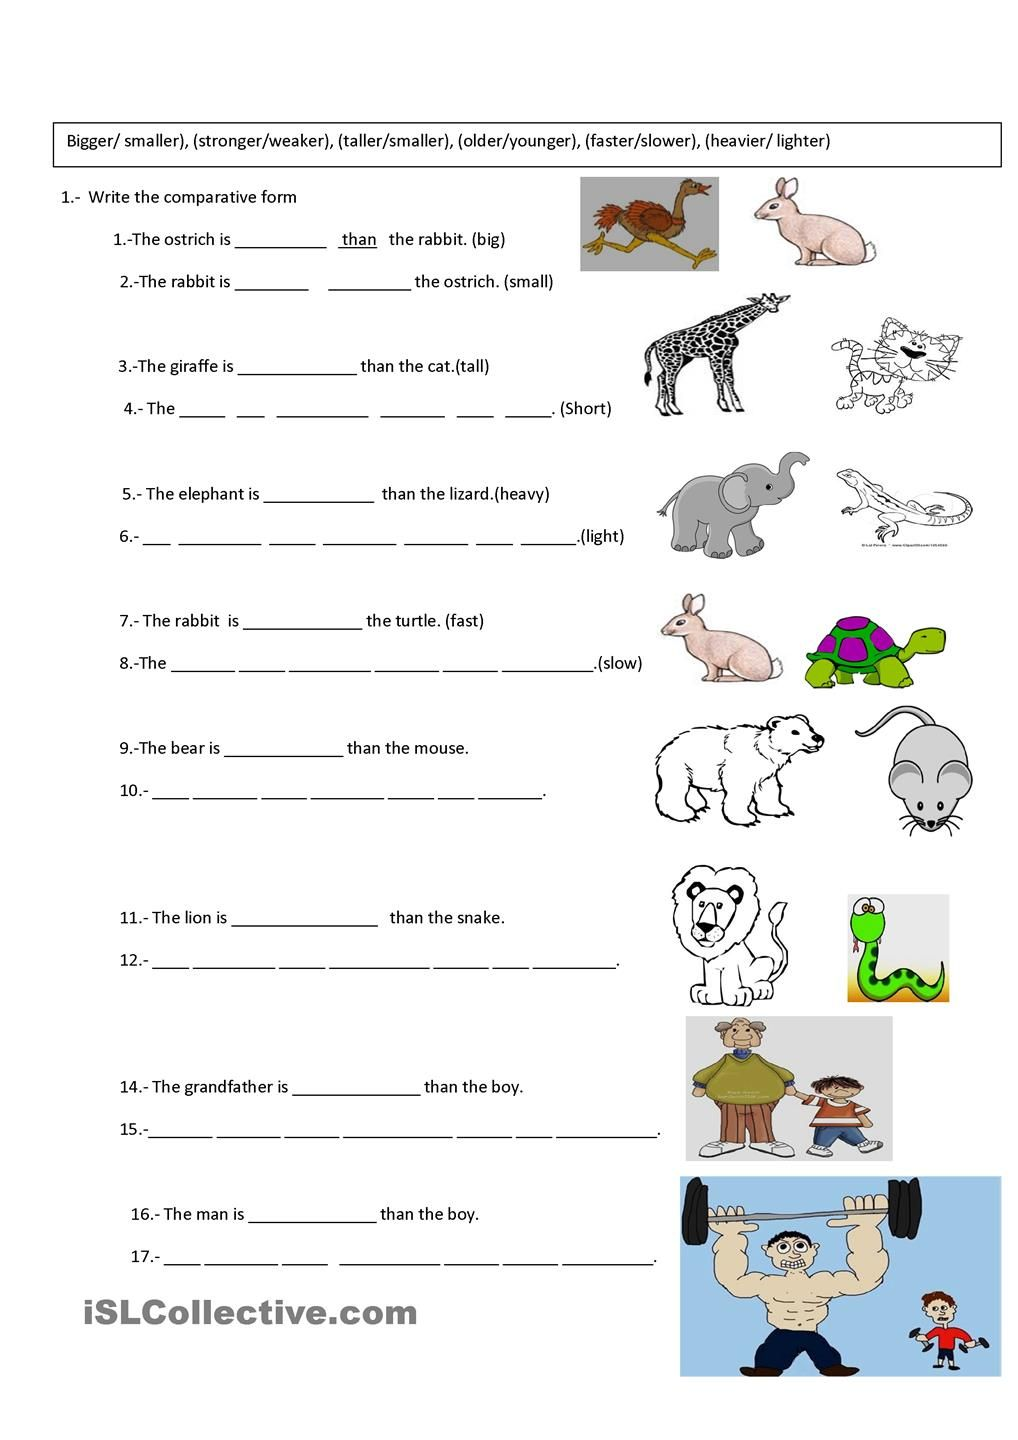 worksheet Comparative Superlative Worksheet 1000 images about comparative and superlative adjectives on pinterest activities fun dip adjective games